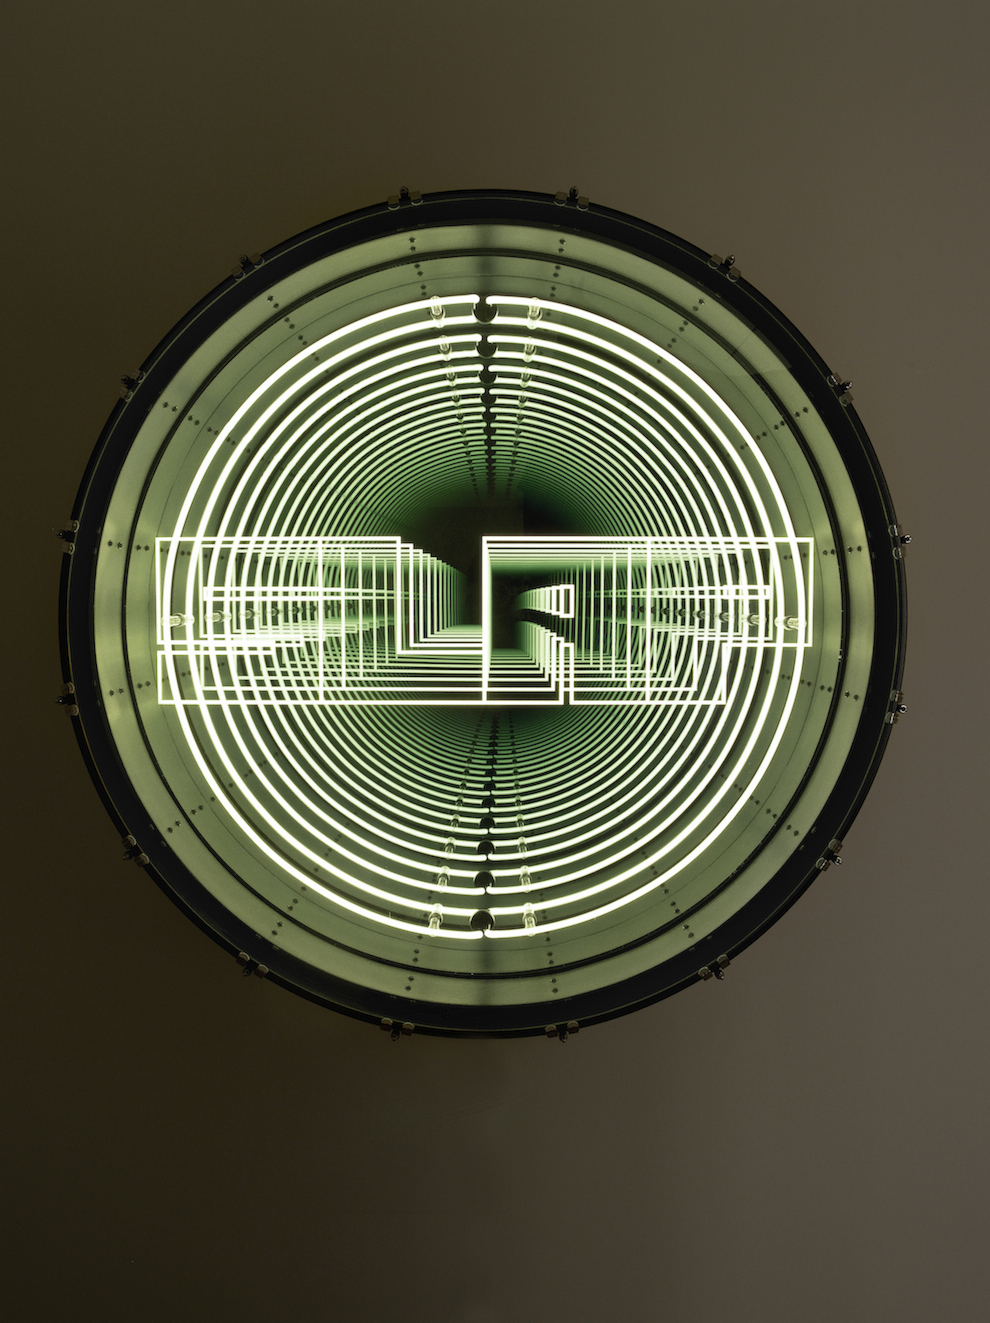 Slap, 2017  Drum, neon, LED lights, plywood, metal, mirror, one-way mirror and electric energy  42 x 125 cm / 16 . x 49 . in.  Photo : B.Huet-Tutti  Courtesy Galerie Daniel Templon, Paris and Bruxelles.